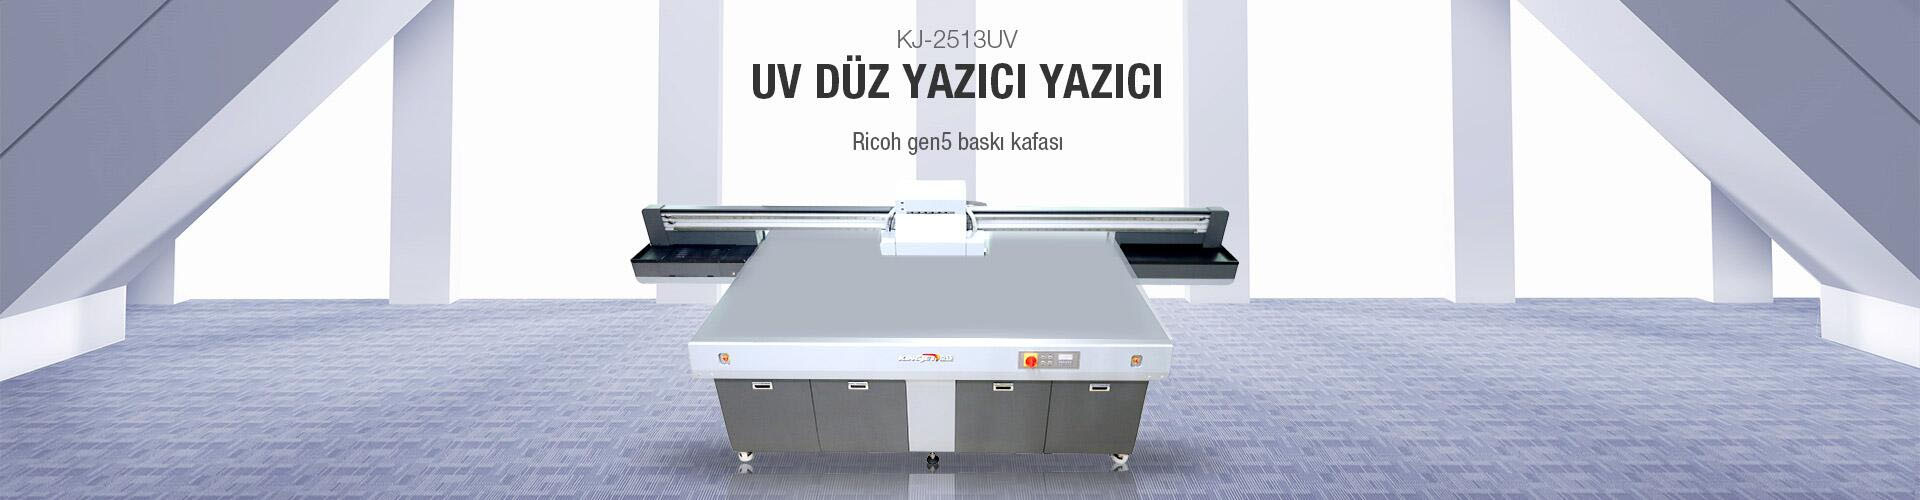 KJ-2513UV Akrilik Baskı Makinesi